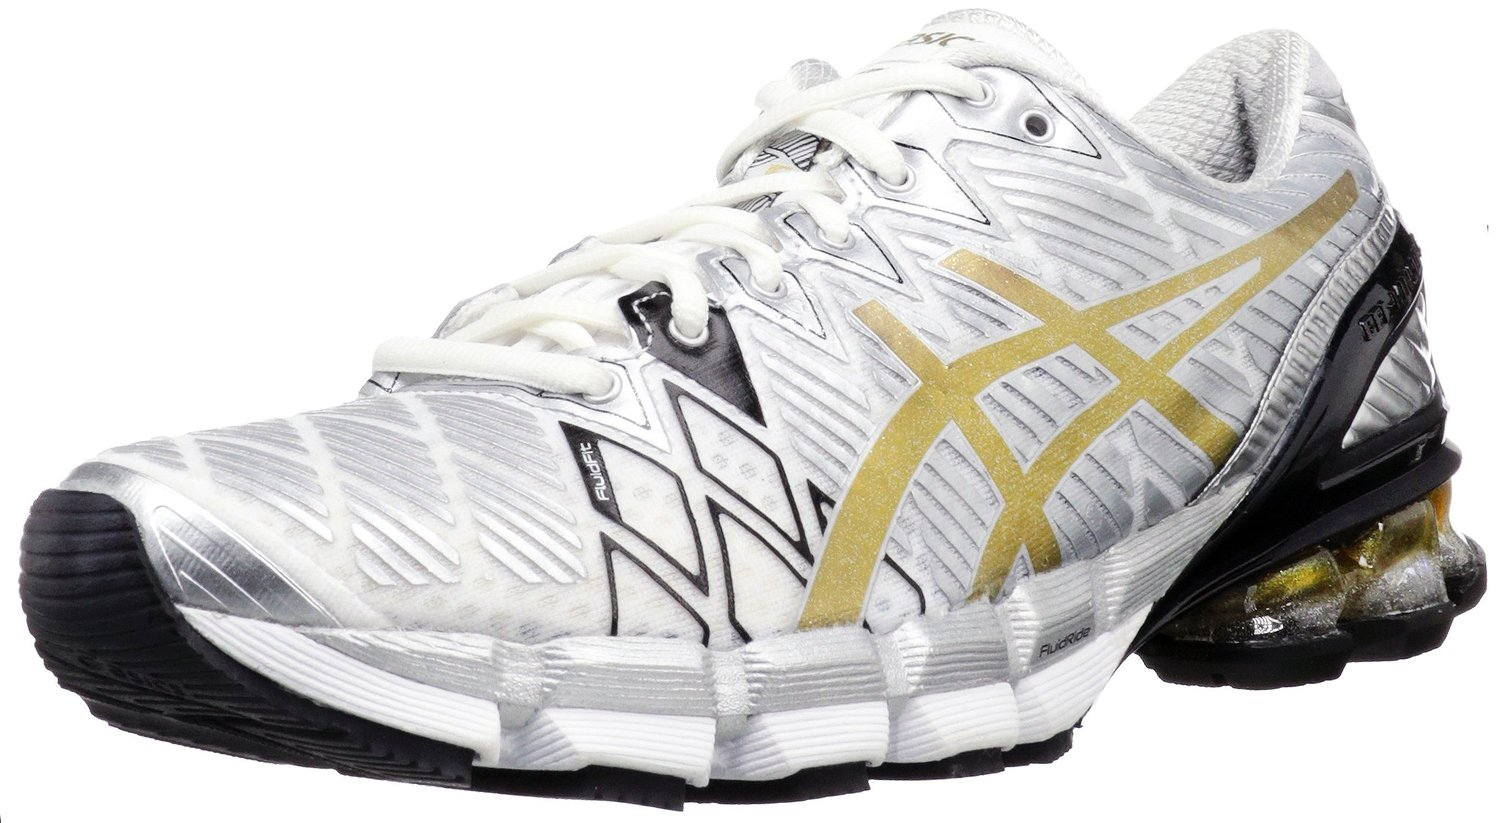 huge discount 45991 32996 ASICS GEL-Kinsei 5 Running Shoe White-Gold-Silver